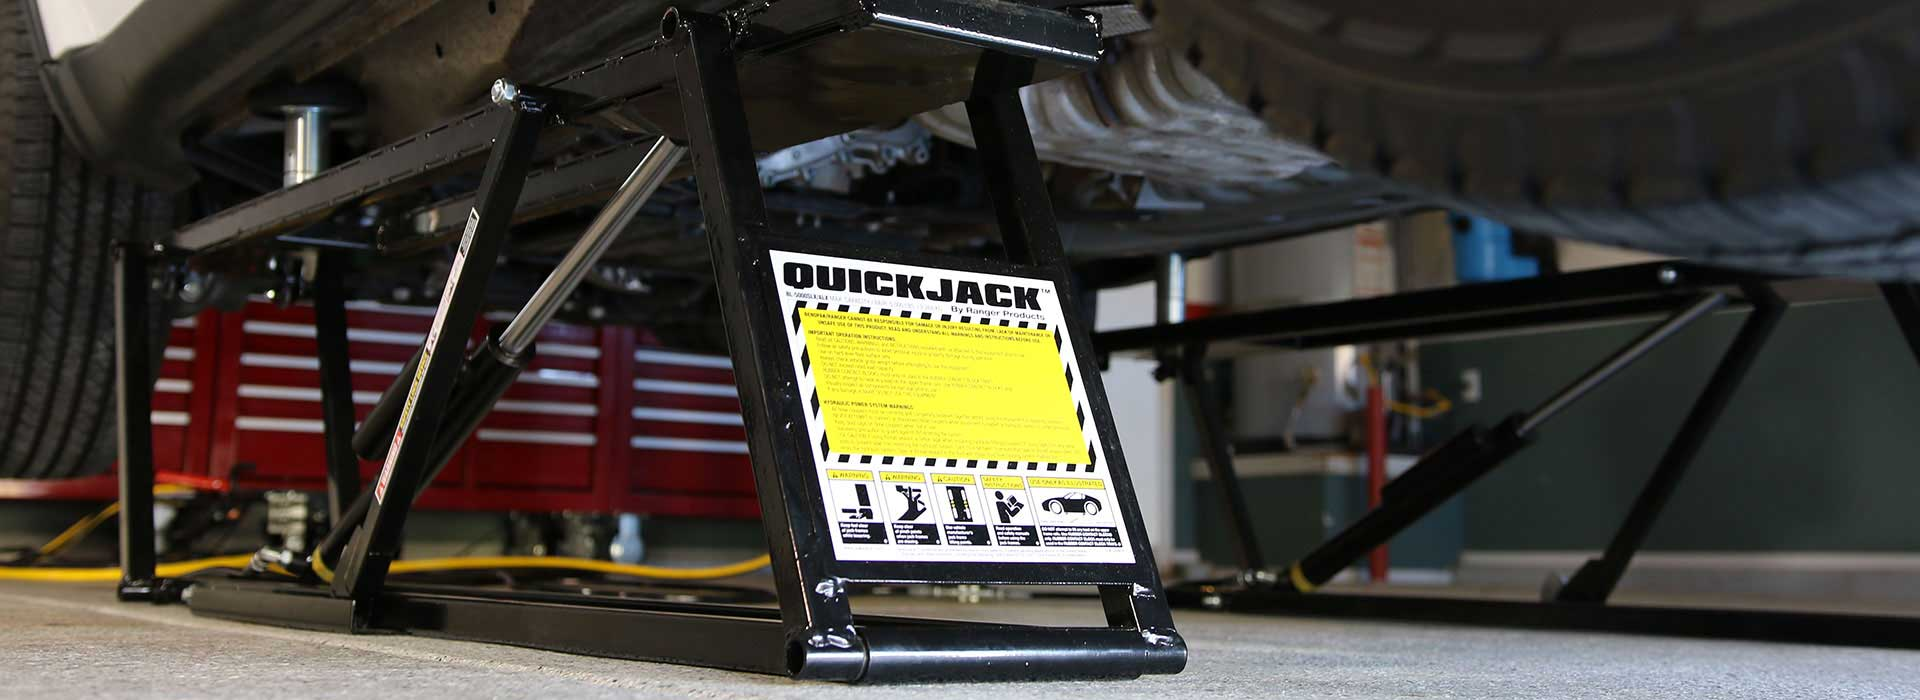 Access higher lifting points with QuickJack